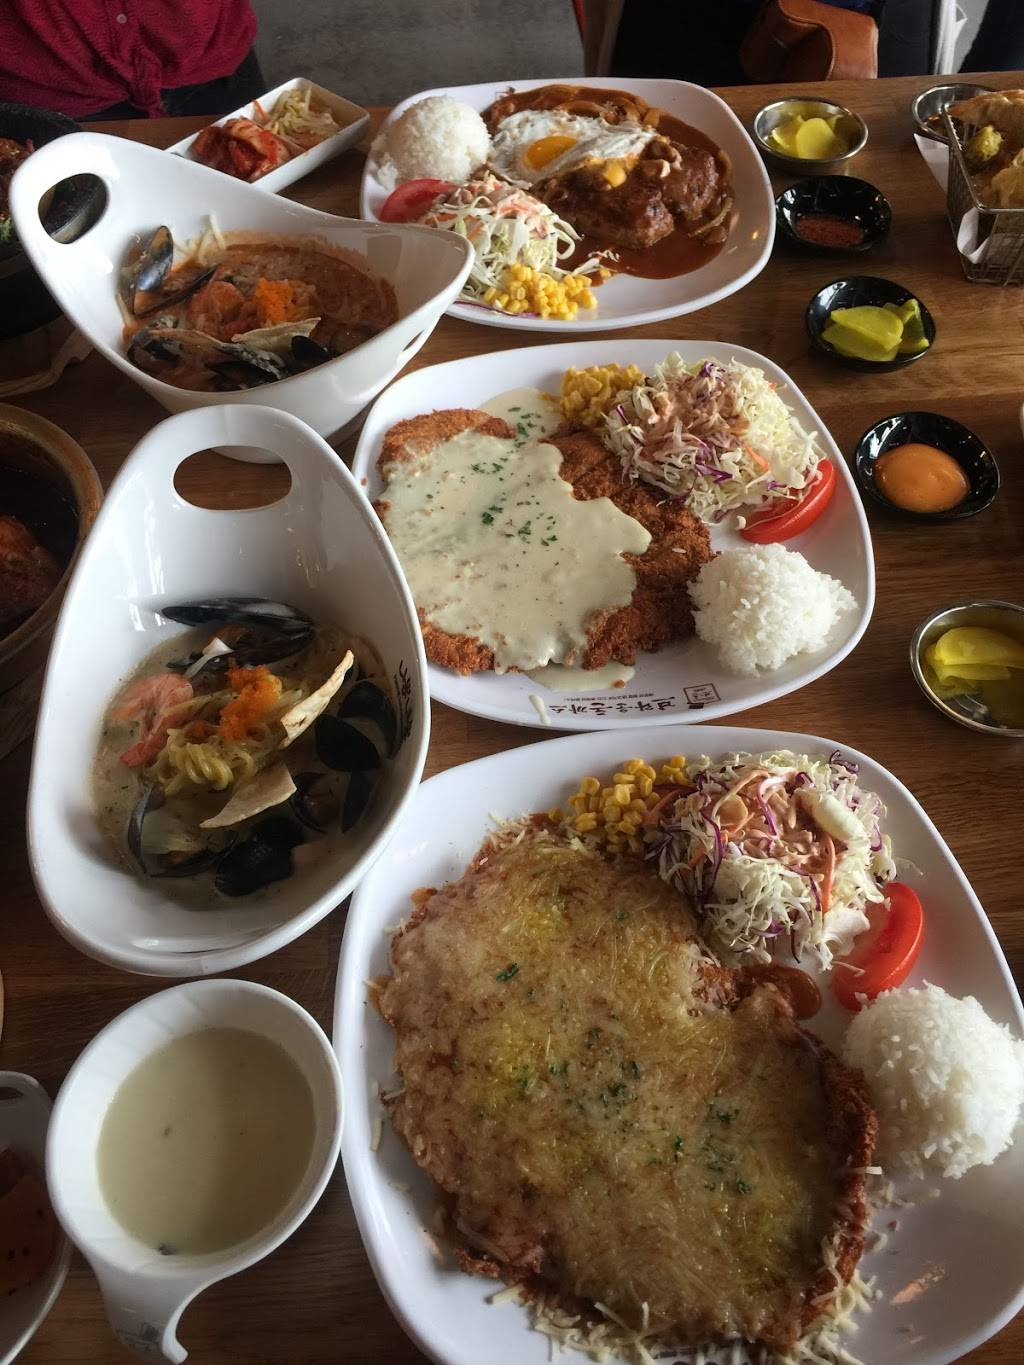 Nipong Naepong   restaurant   450 S Western Ave 3rd floor, Los Angeles, CA 90020, USA   2134877000 OR +1 213-487-7000